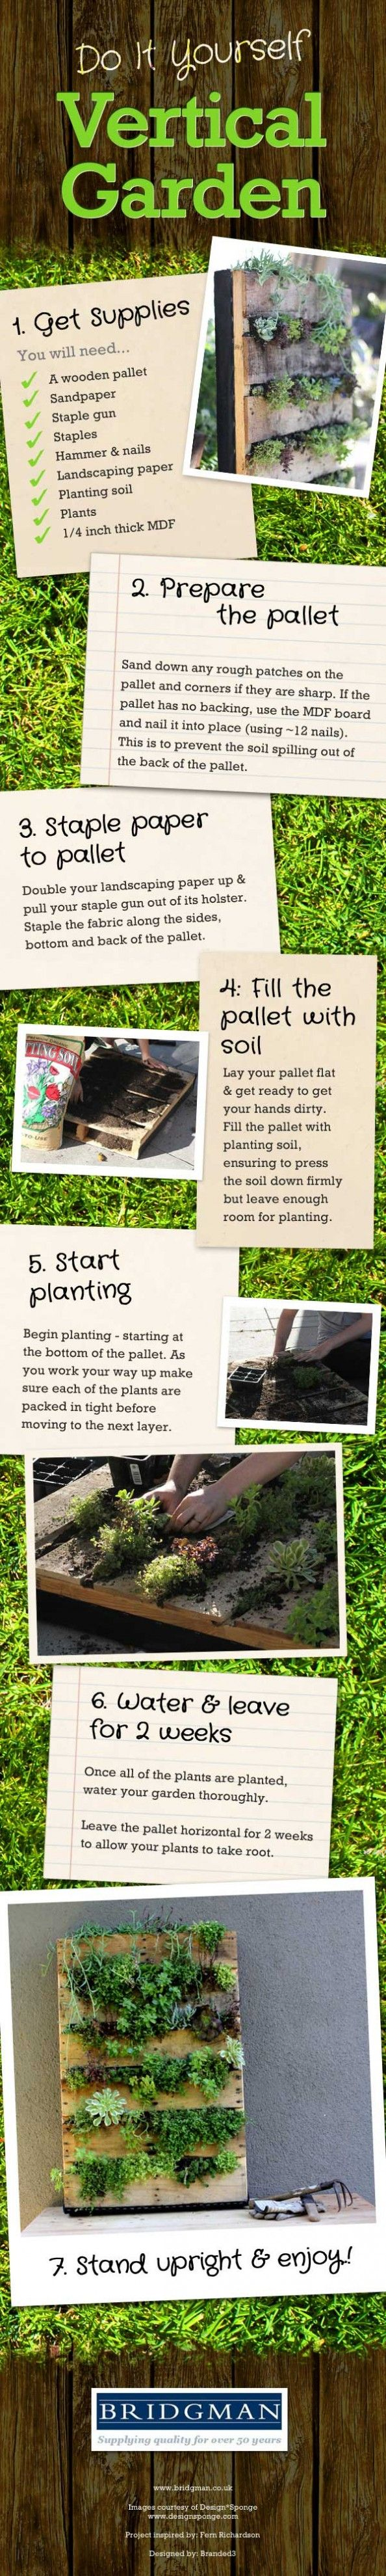 Do-it-yourself Vertical Garden. Make sure pallet is made from untreated wood if you intend to plant edibles!